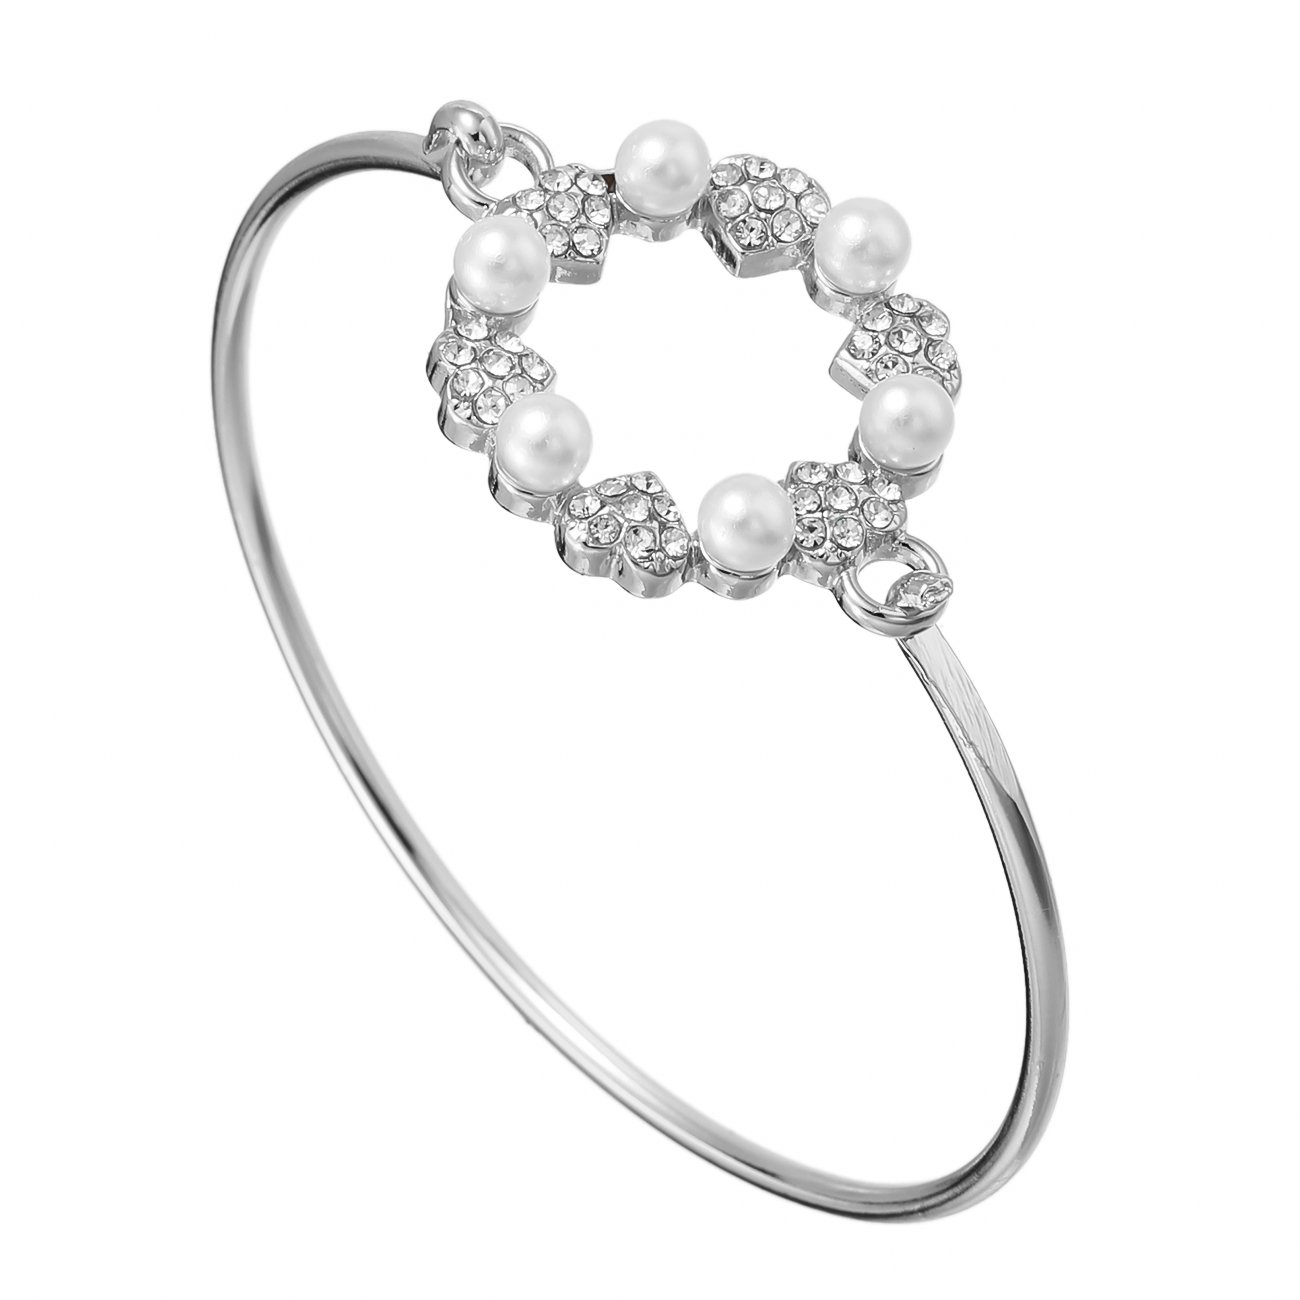 PANGRUI Easy Open Magnificent Crystal Crown Bangle Bracelets with Rhinestone and Pearl Bridesmaid Gift